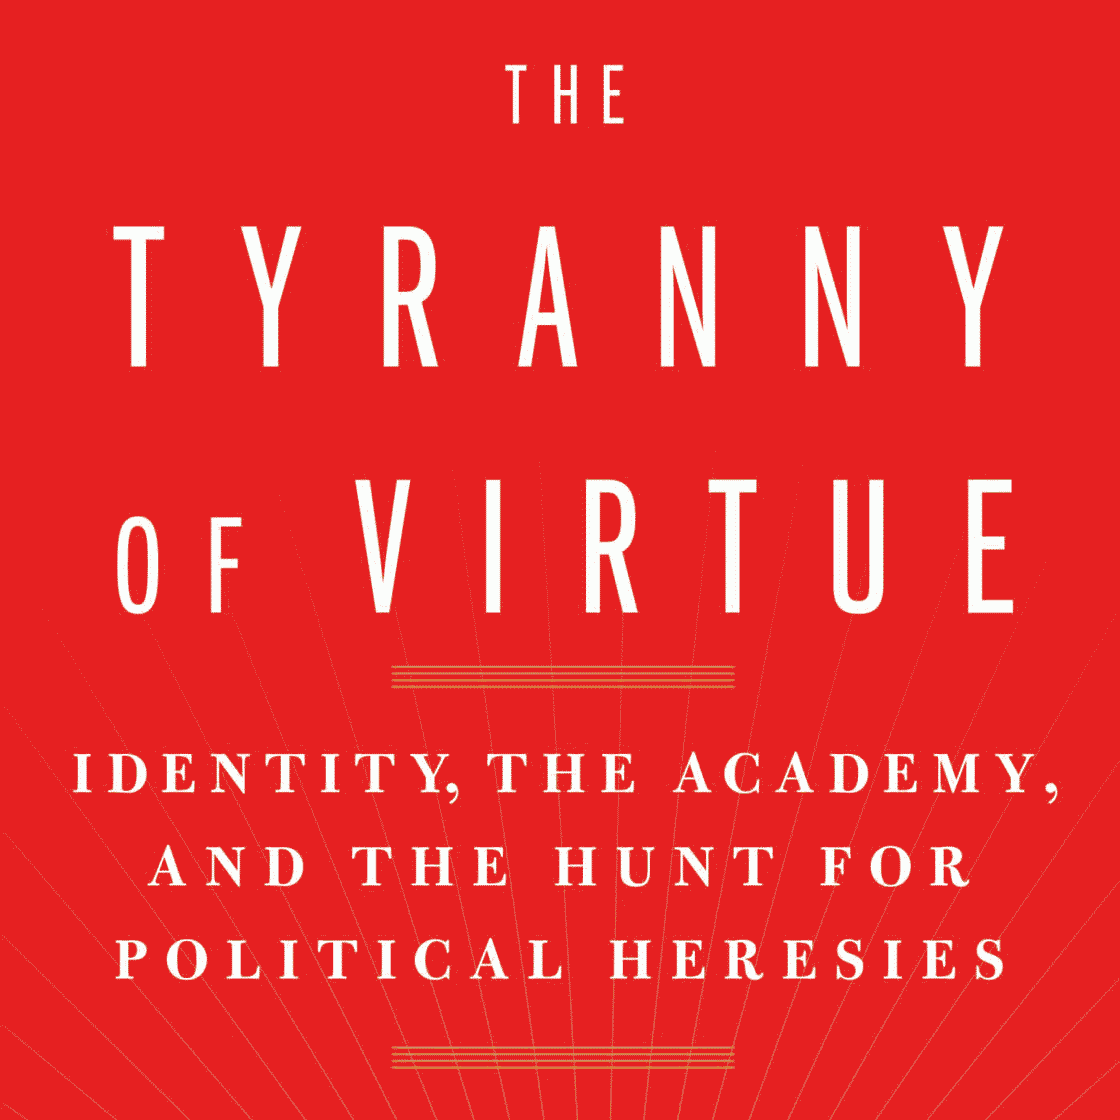 The Tyranny of Virtue: Identity, The Academy, and the Hunt for Political Heresies (detail of book cover)